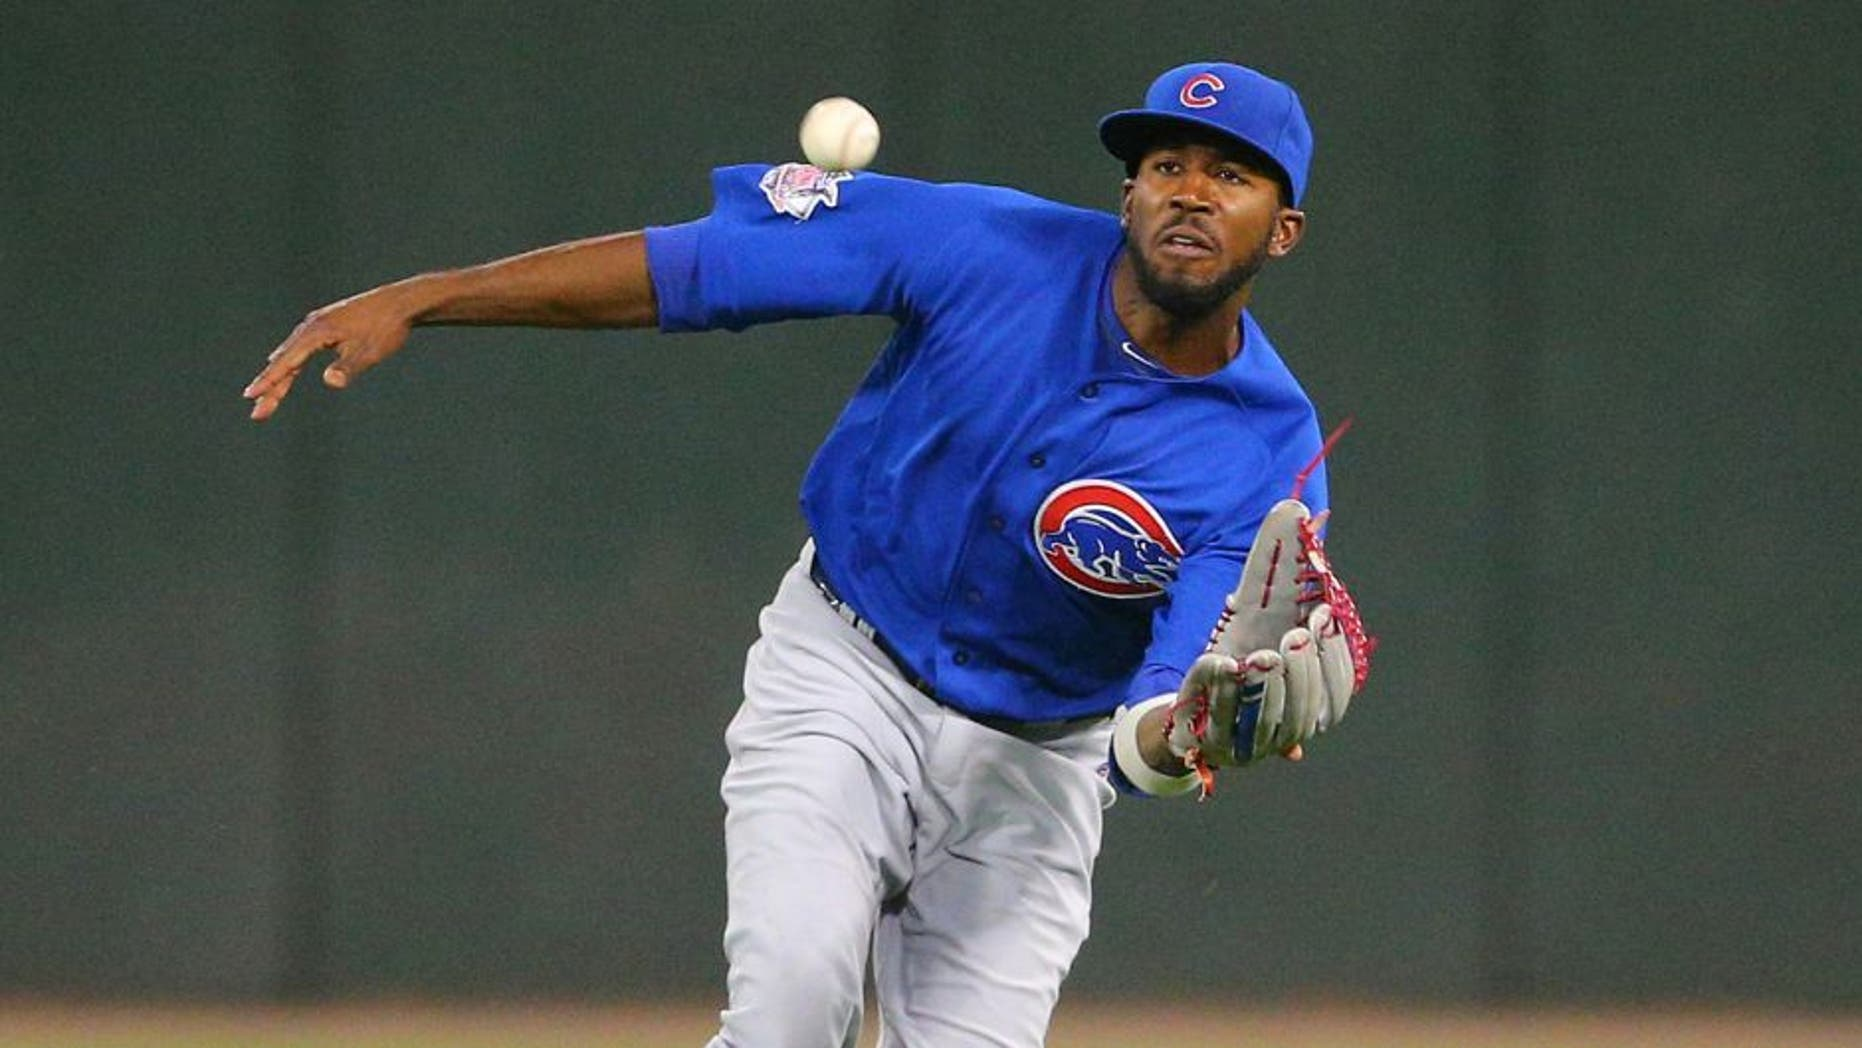 Aug 15, 2015; Chicago, IL, USA; Chicago Cubs center fielder Dexter Fowler (24) catches a fly ball off the bat of Chicago White Sox right fielder Avisail Garcia (not pictured) during the eighth inning at U.S Cellular Field. Mandatory Credit: Dennis Wierzbicki-USA TODAY Sports